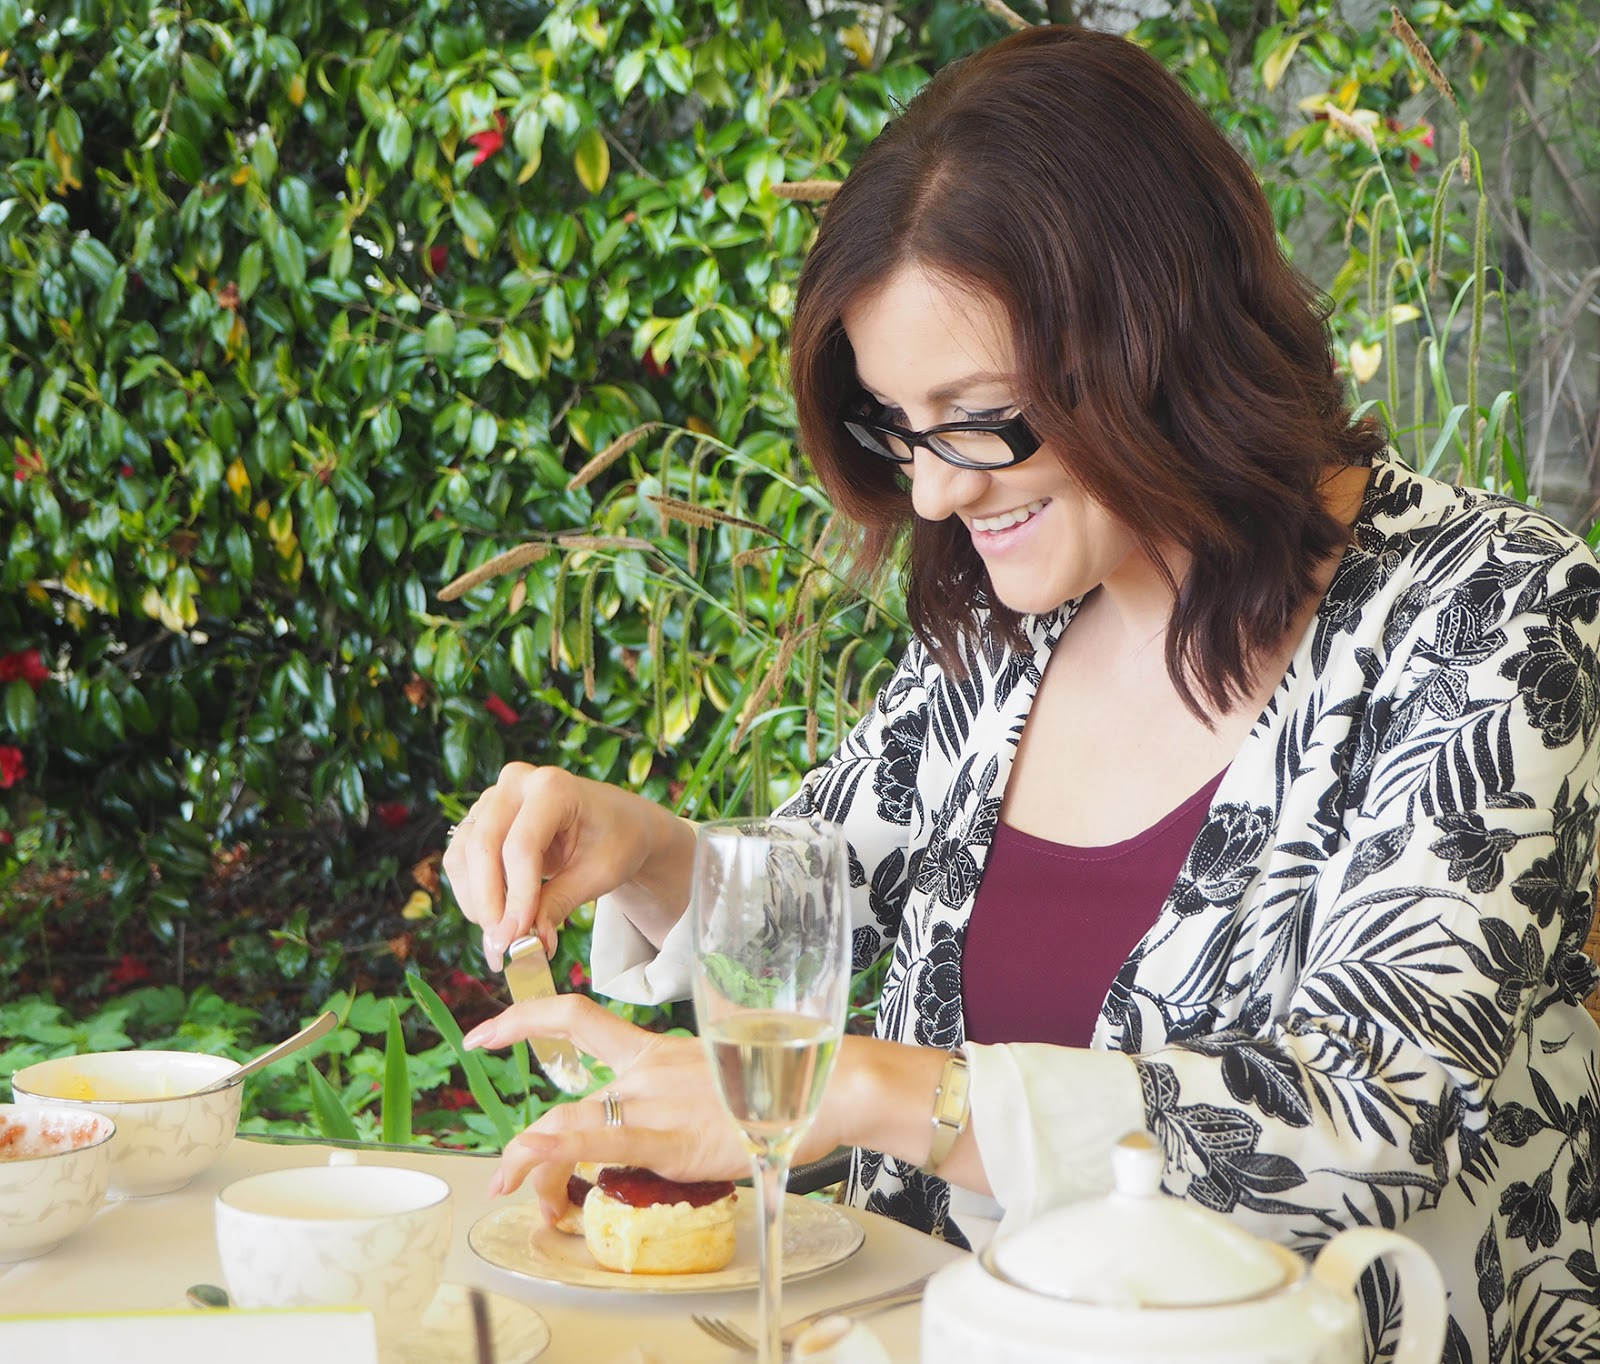 Afternoon tea review at South Lodge in Horsham - eating scones